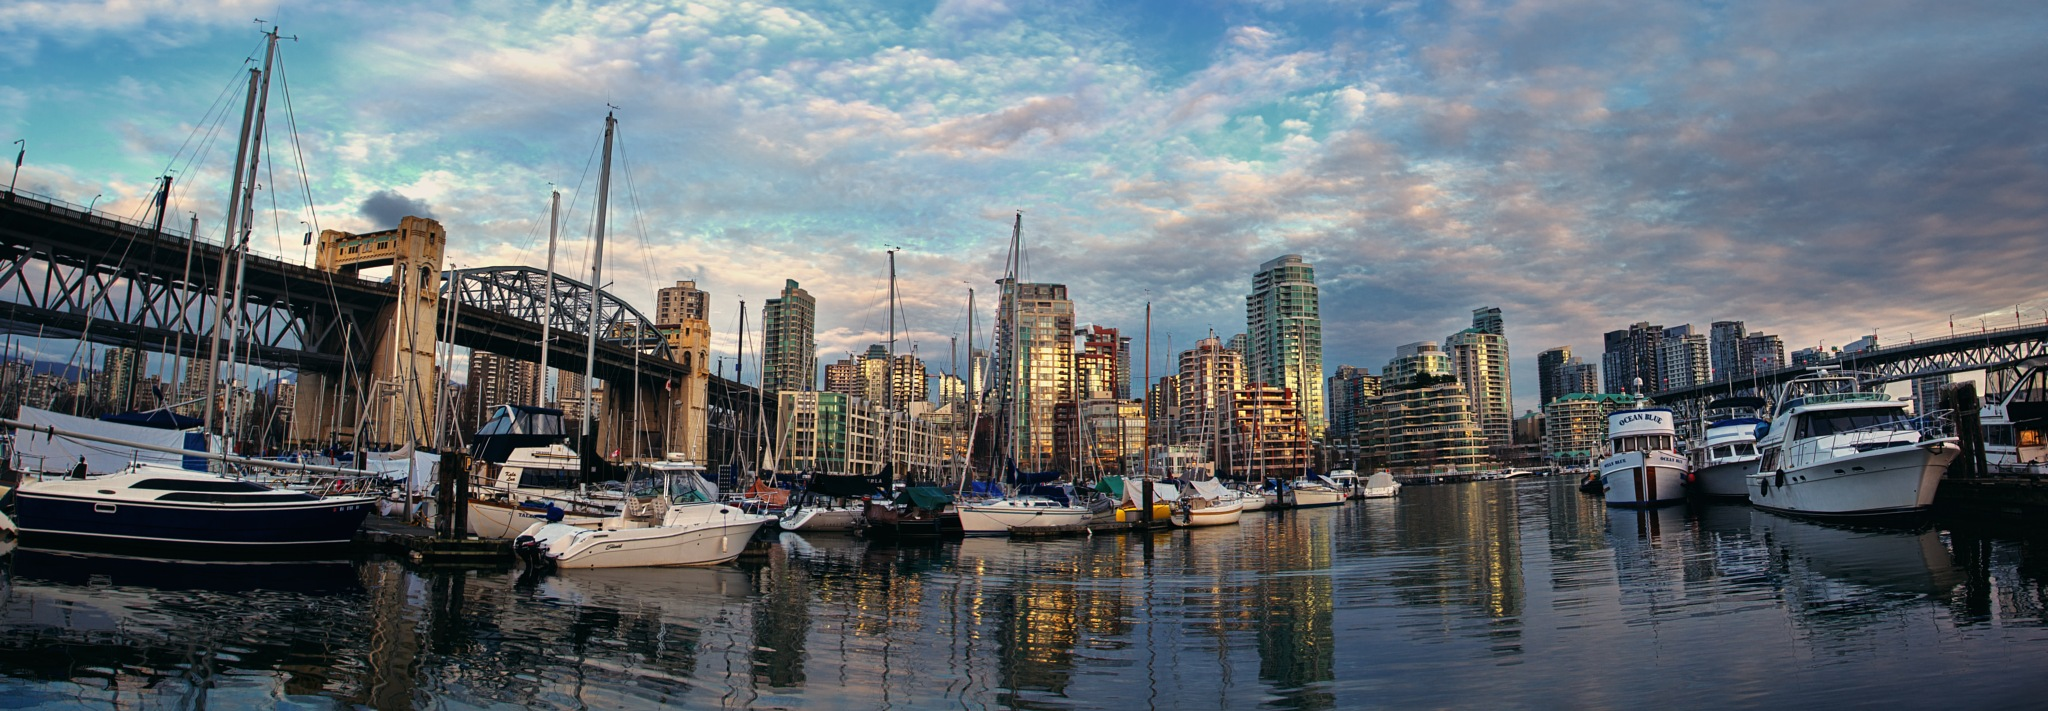 Vancouver Harbour by Stefane Berube